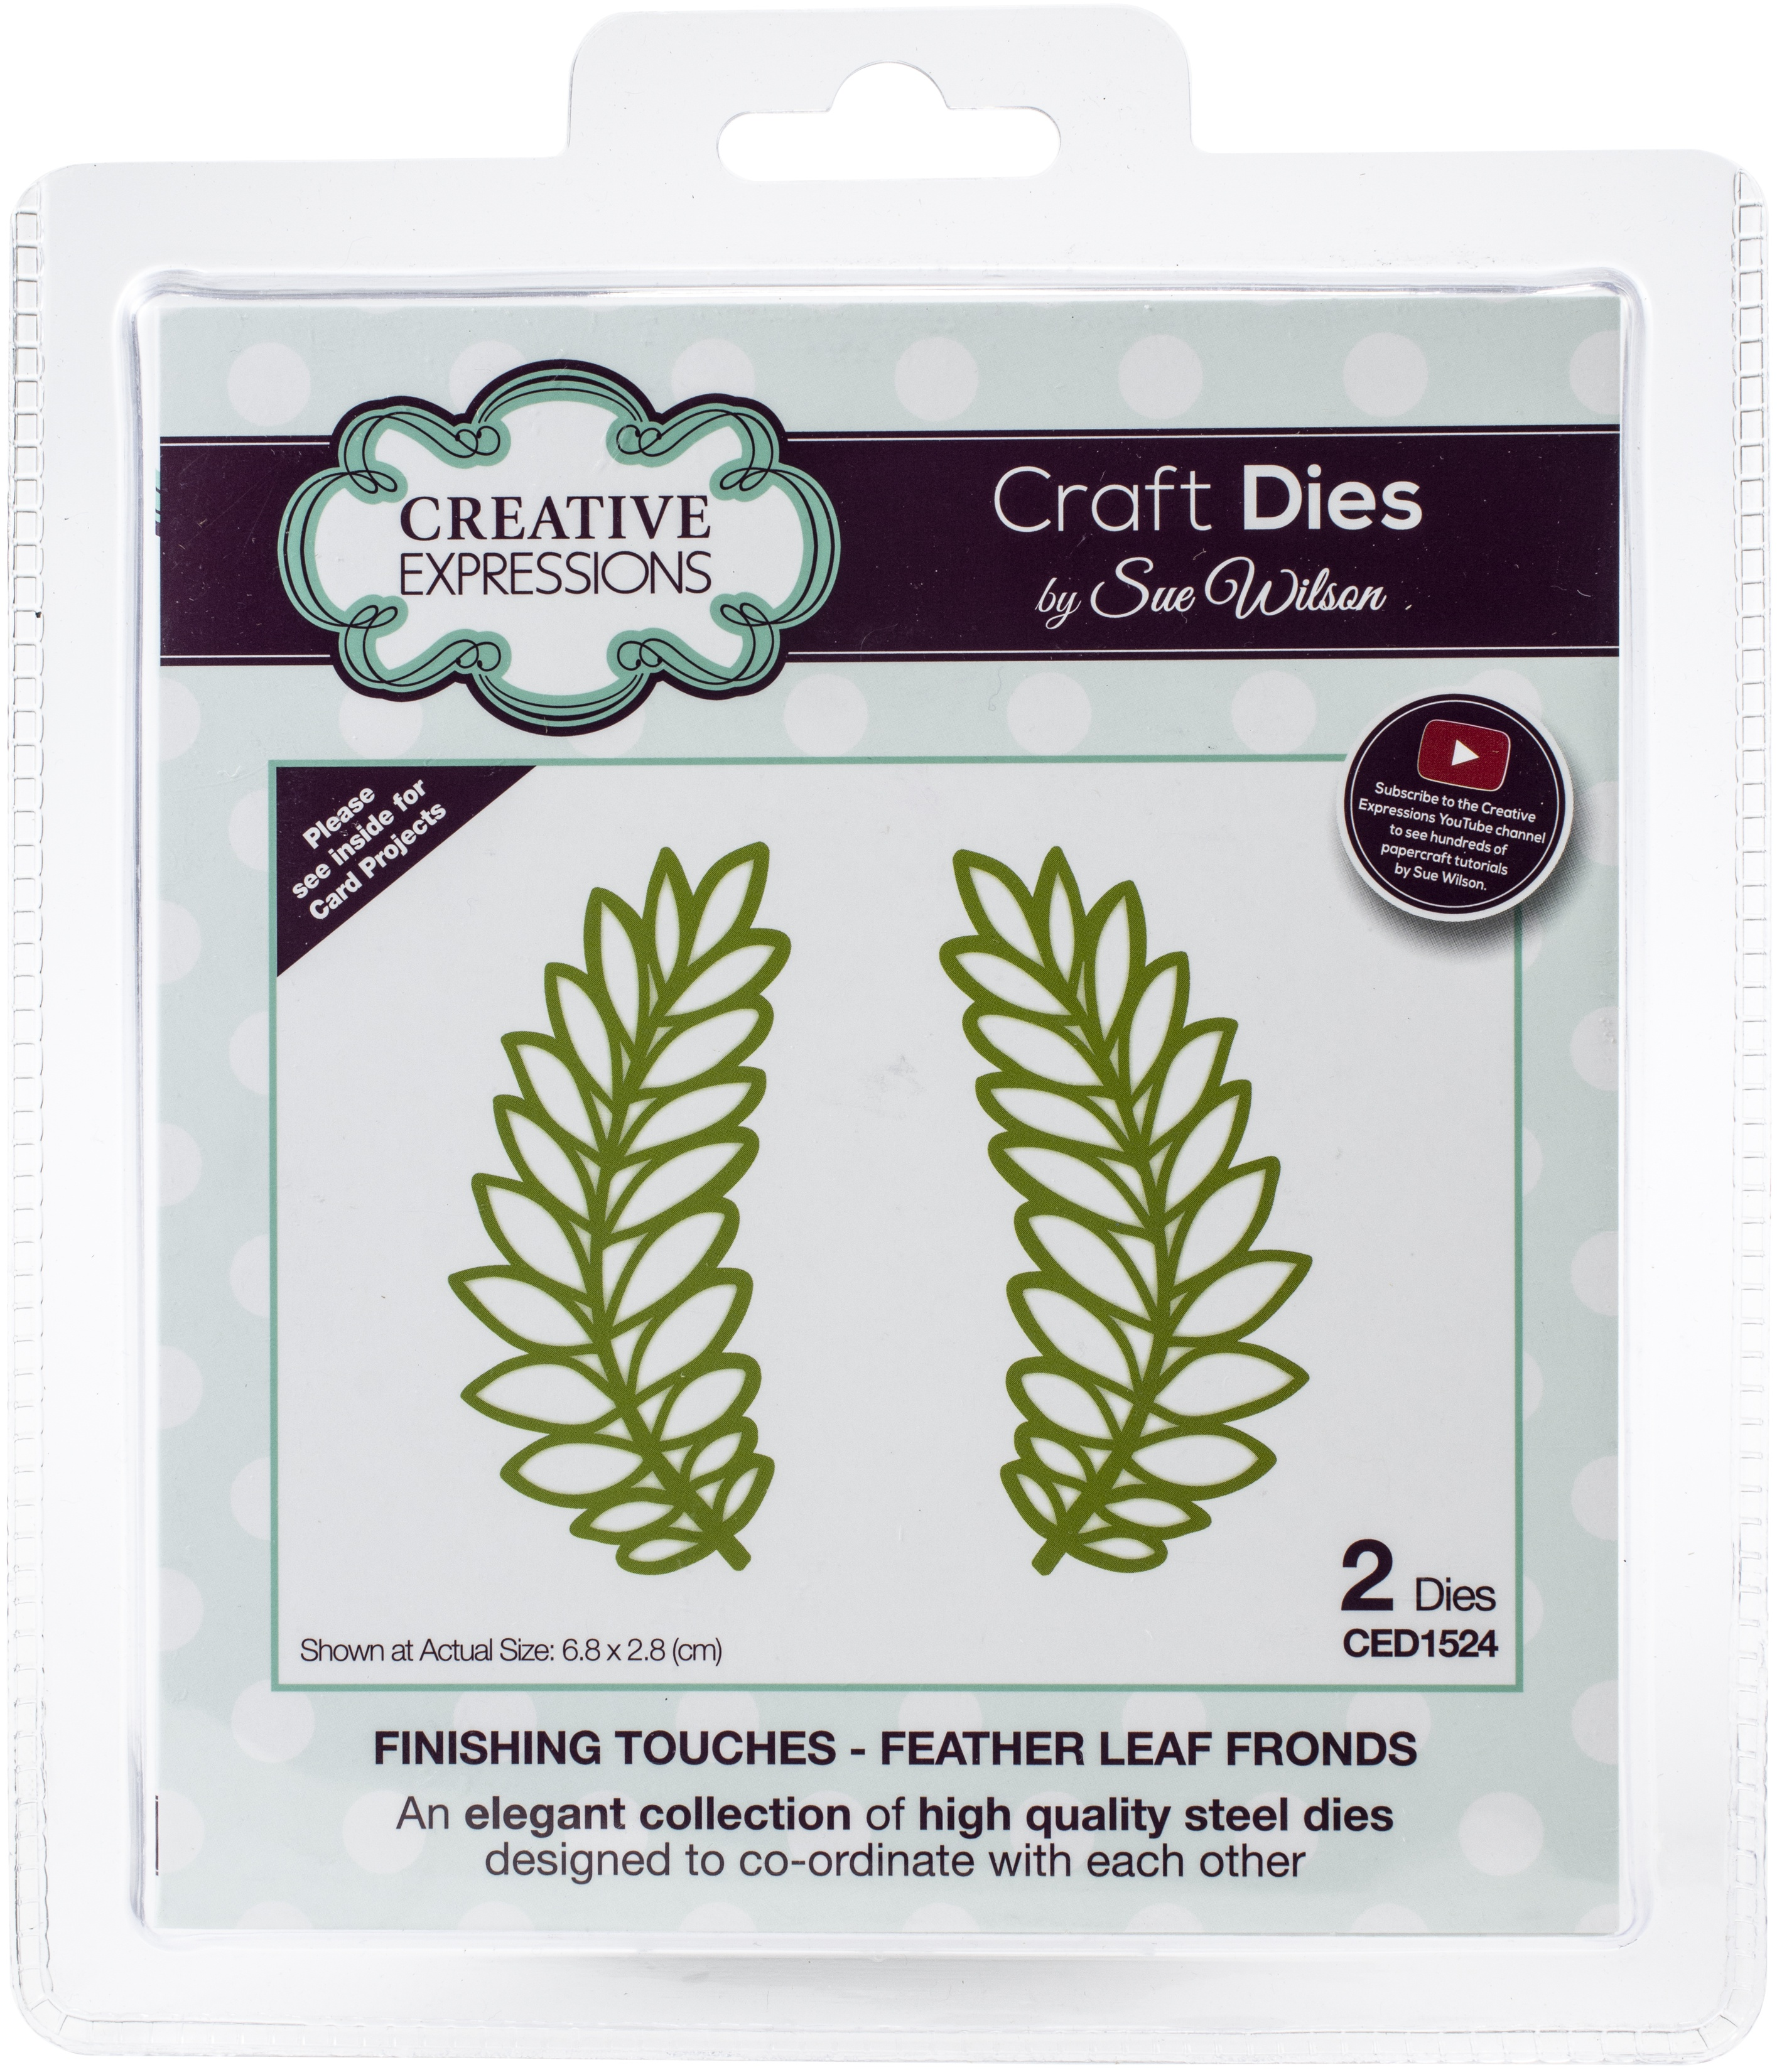 Creative Expressions Craft Dies By Sue Wilson-Finshing Touches-Feather Leaf Fron...